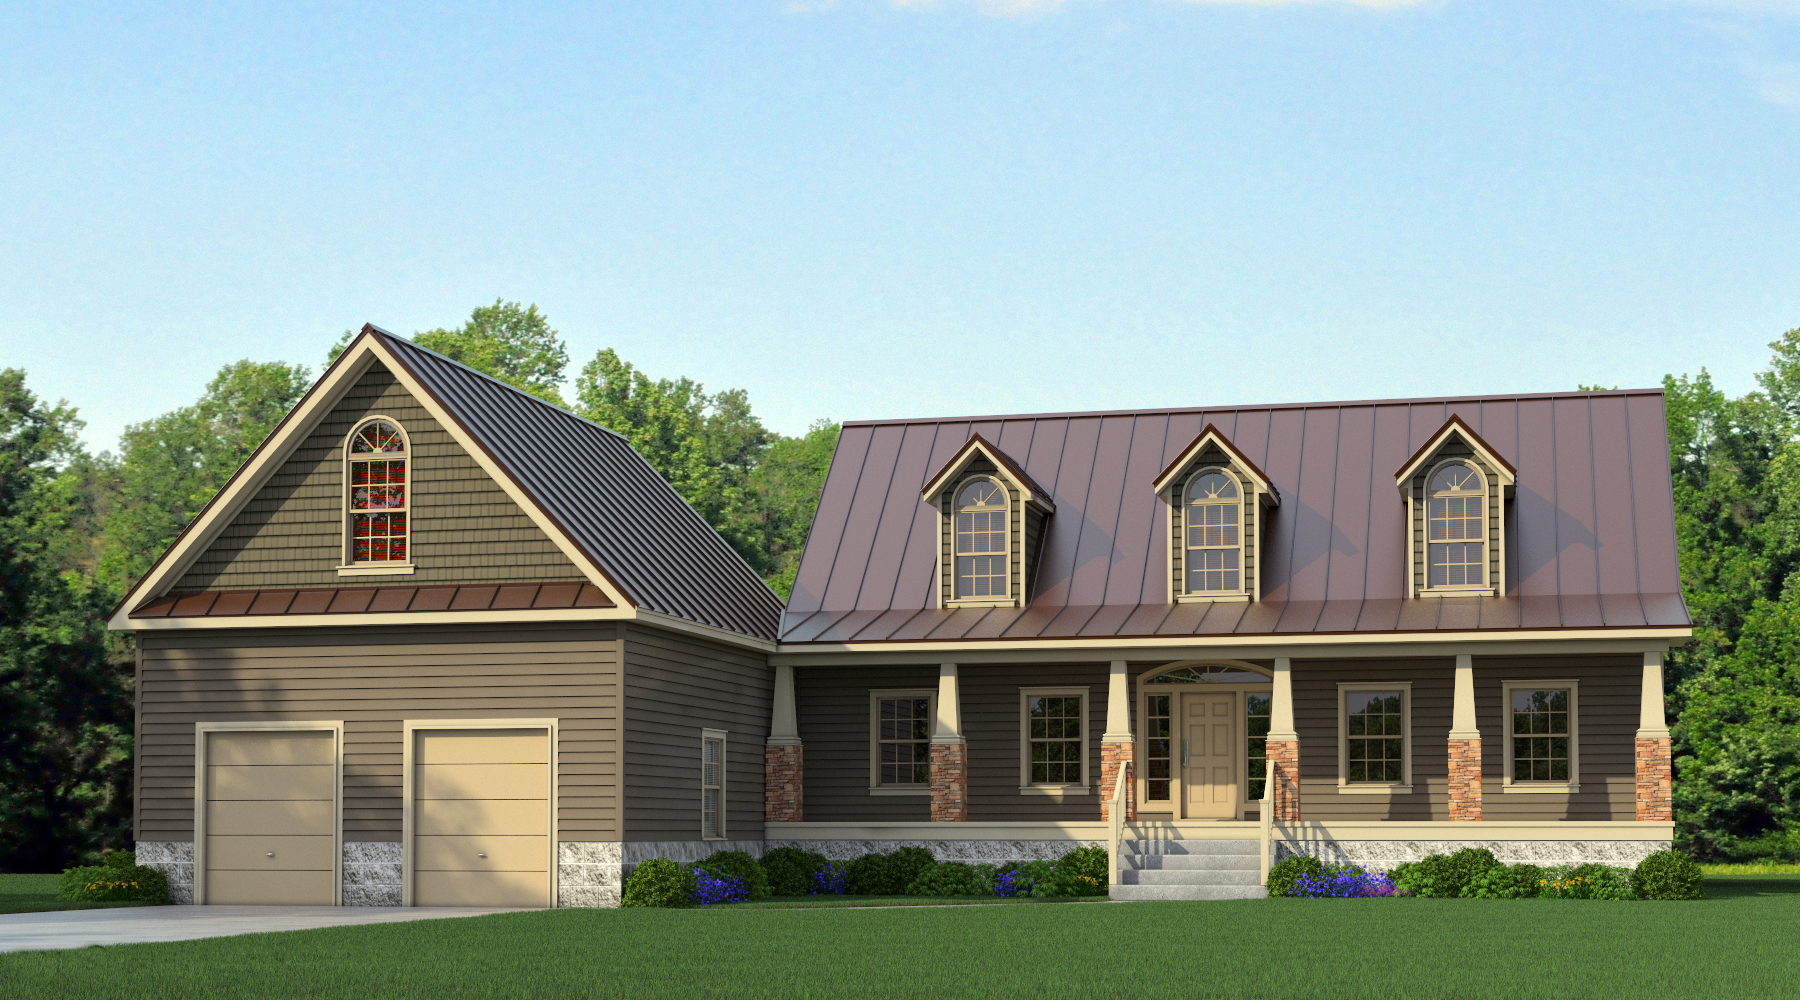 Morton pole barn house plans joy studio design gallery for House plans for sale with cost to build